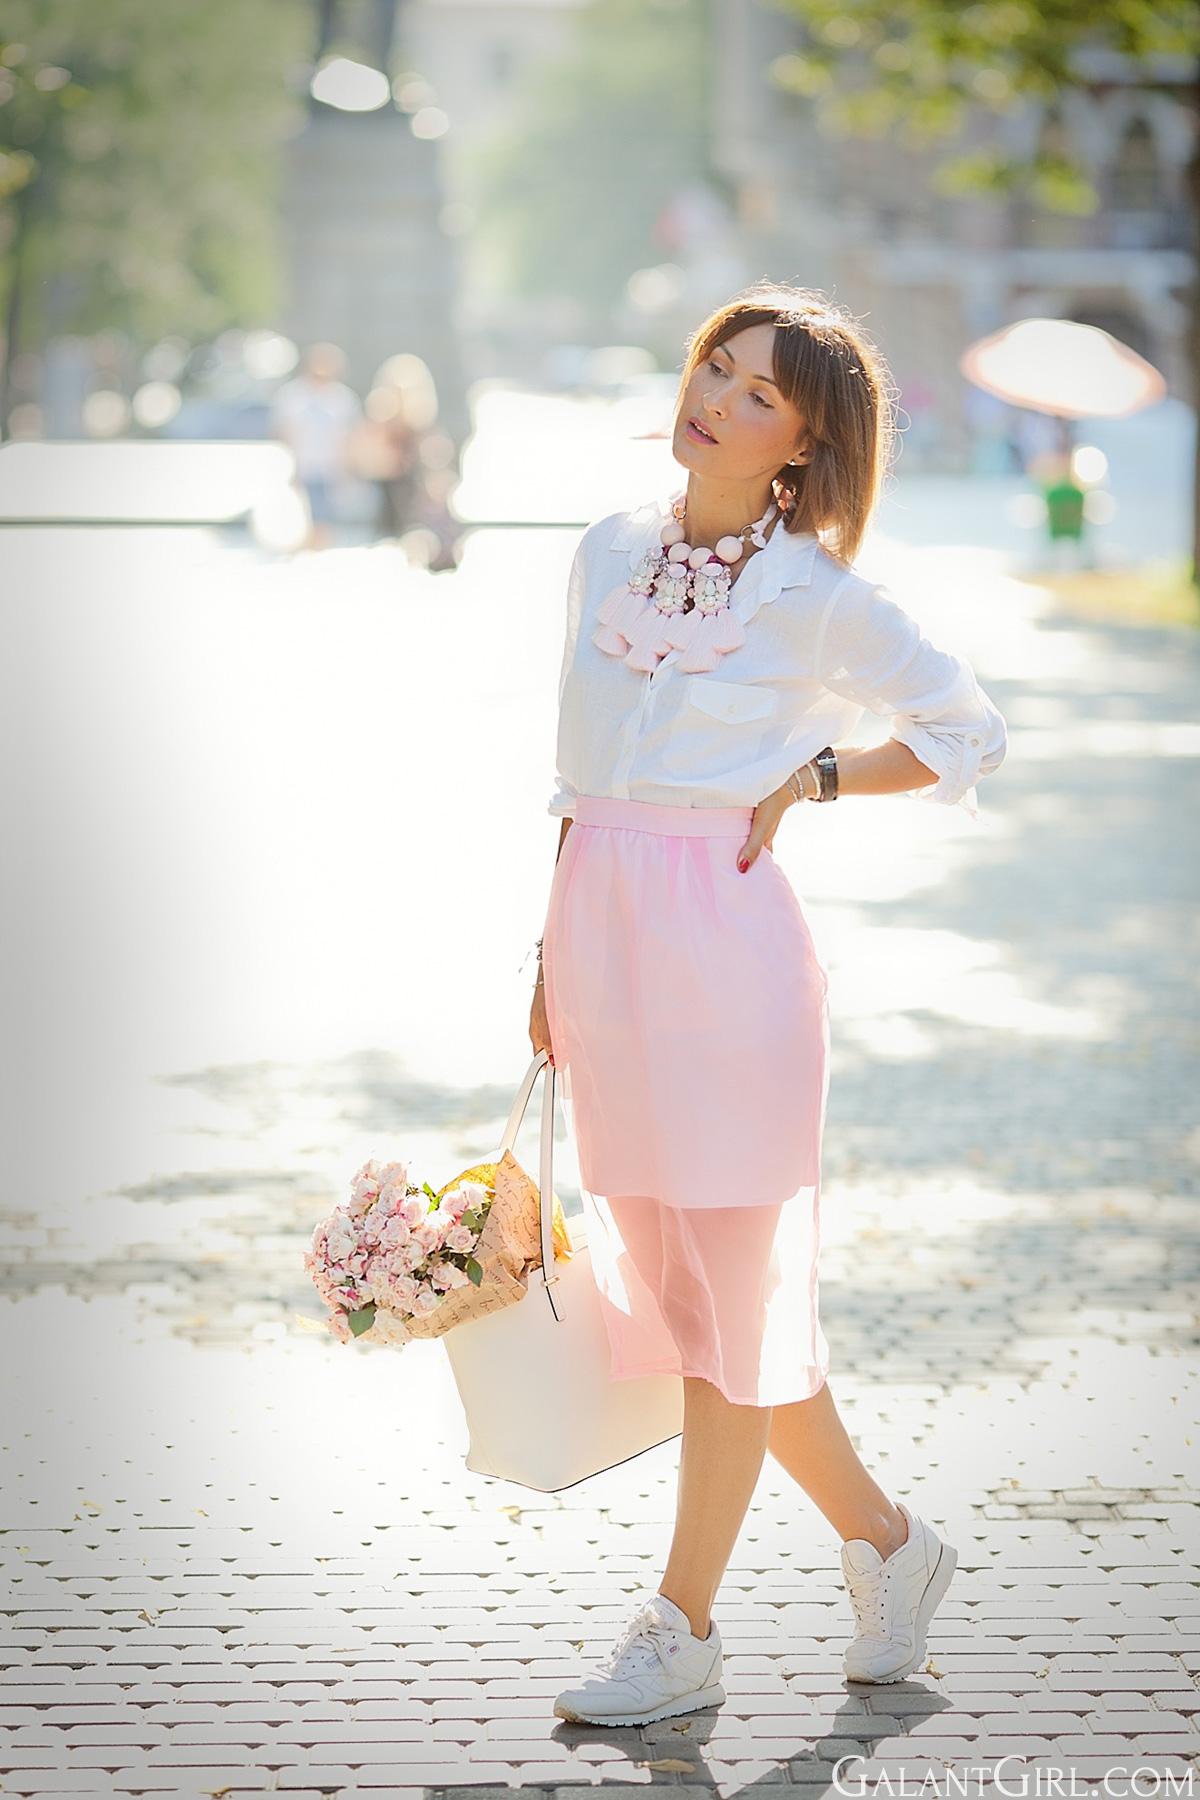 skirt-and-sneakers-outfit-in-pink-shades-galantgirl